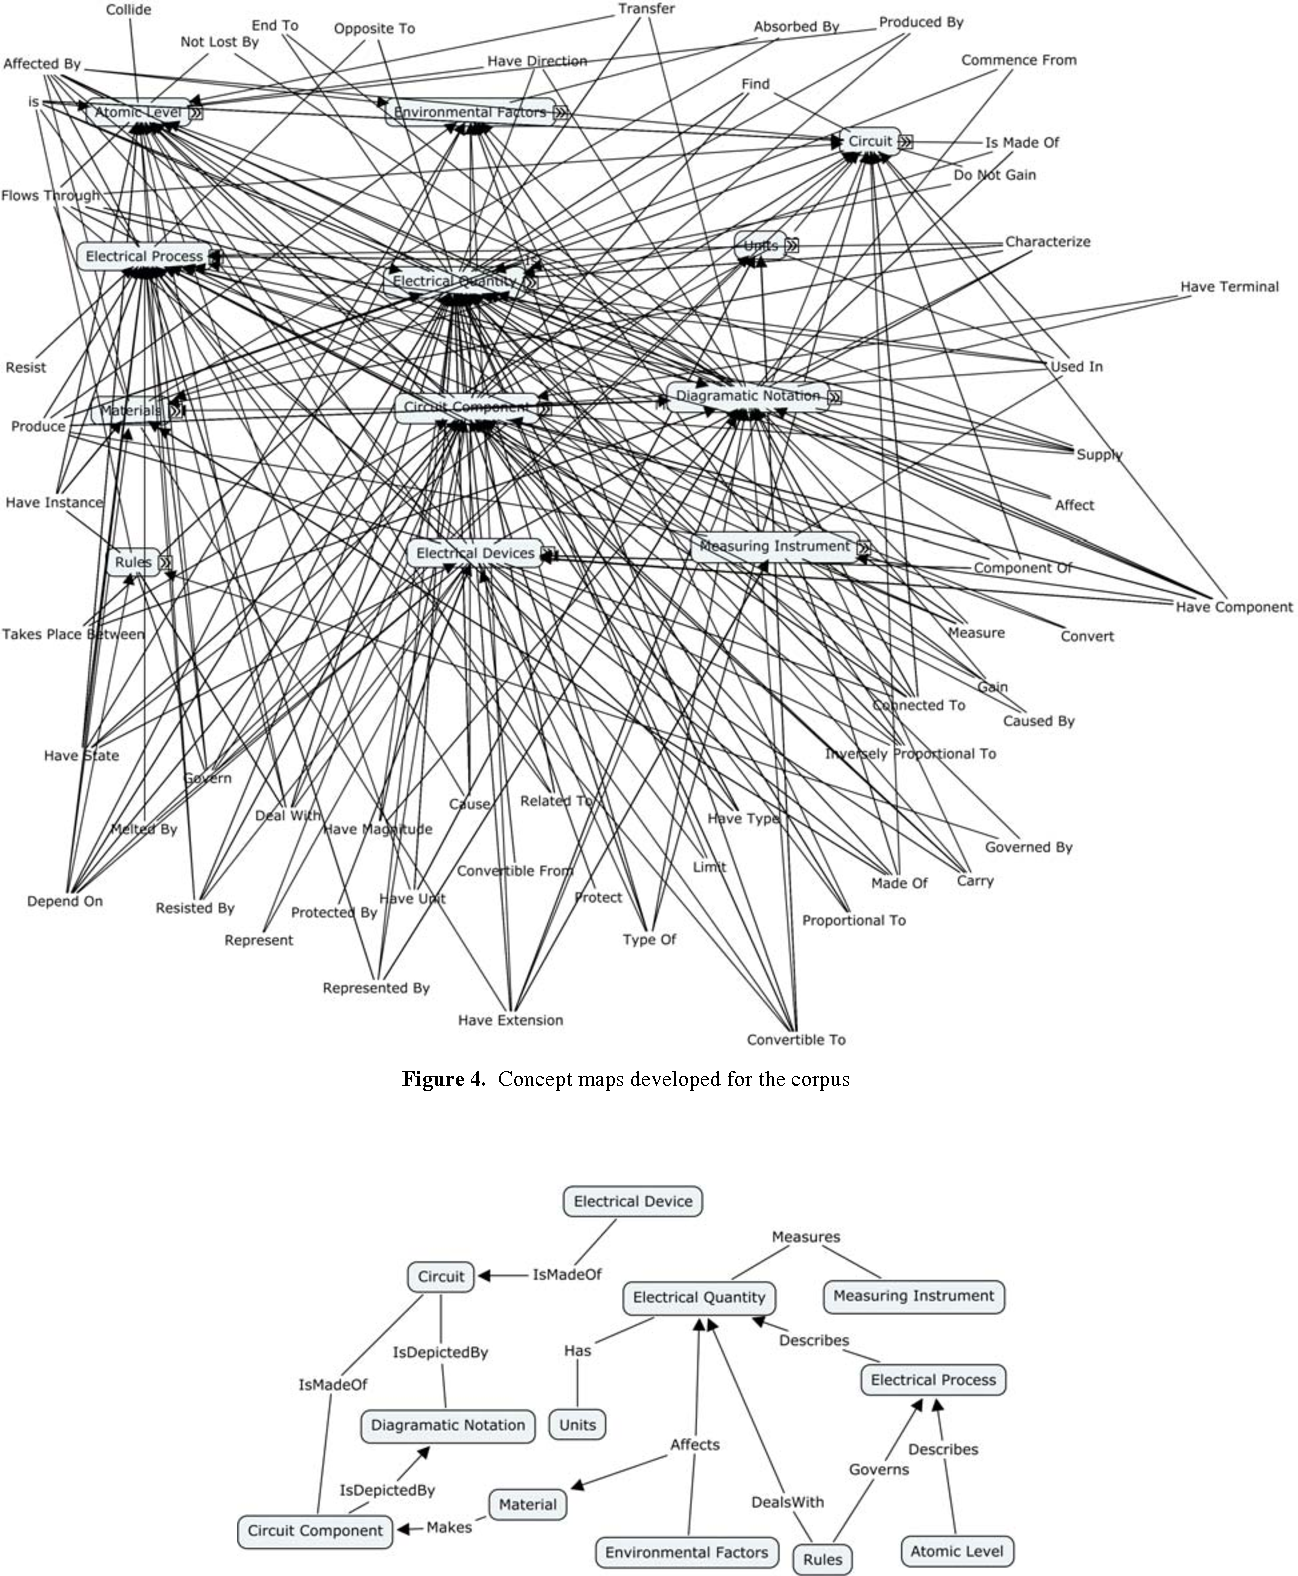 Figure 4. Concept maps developed for the corpus